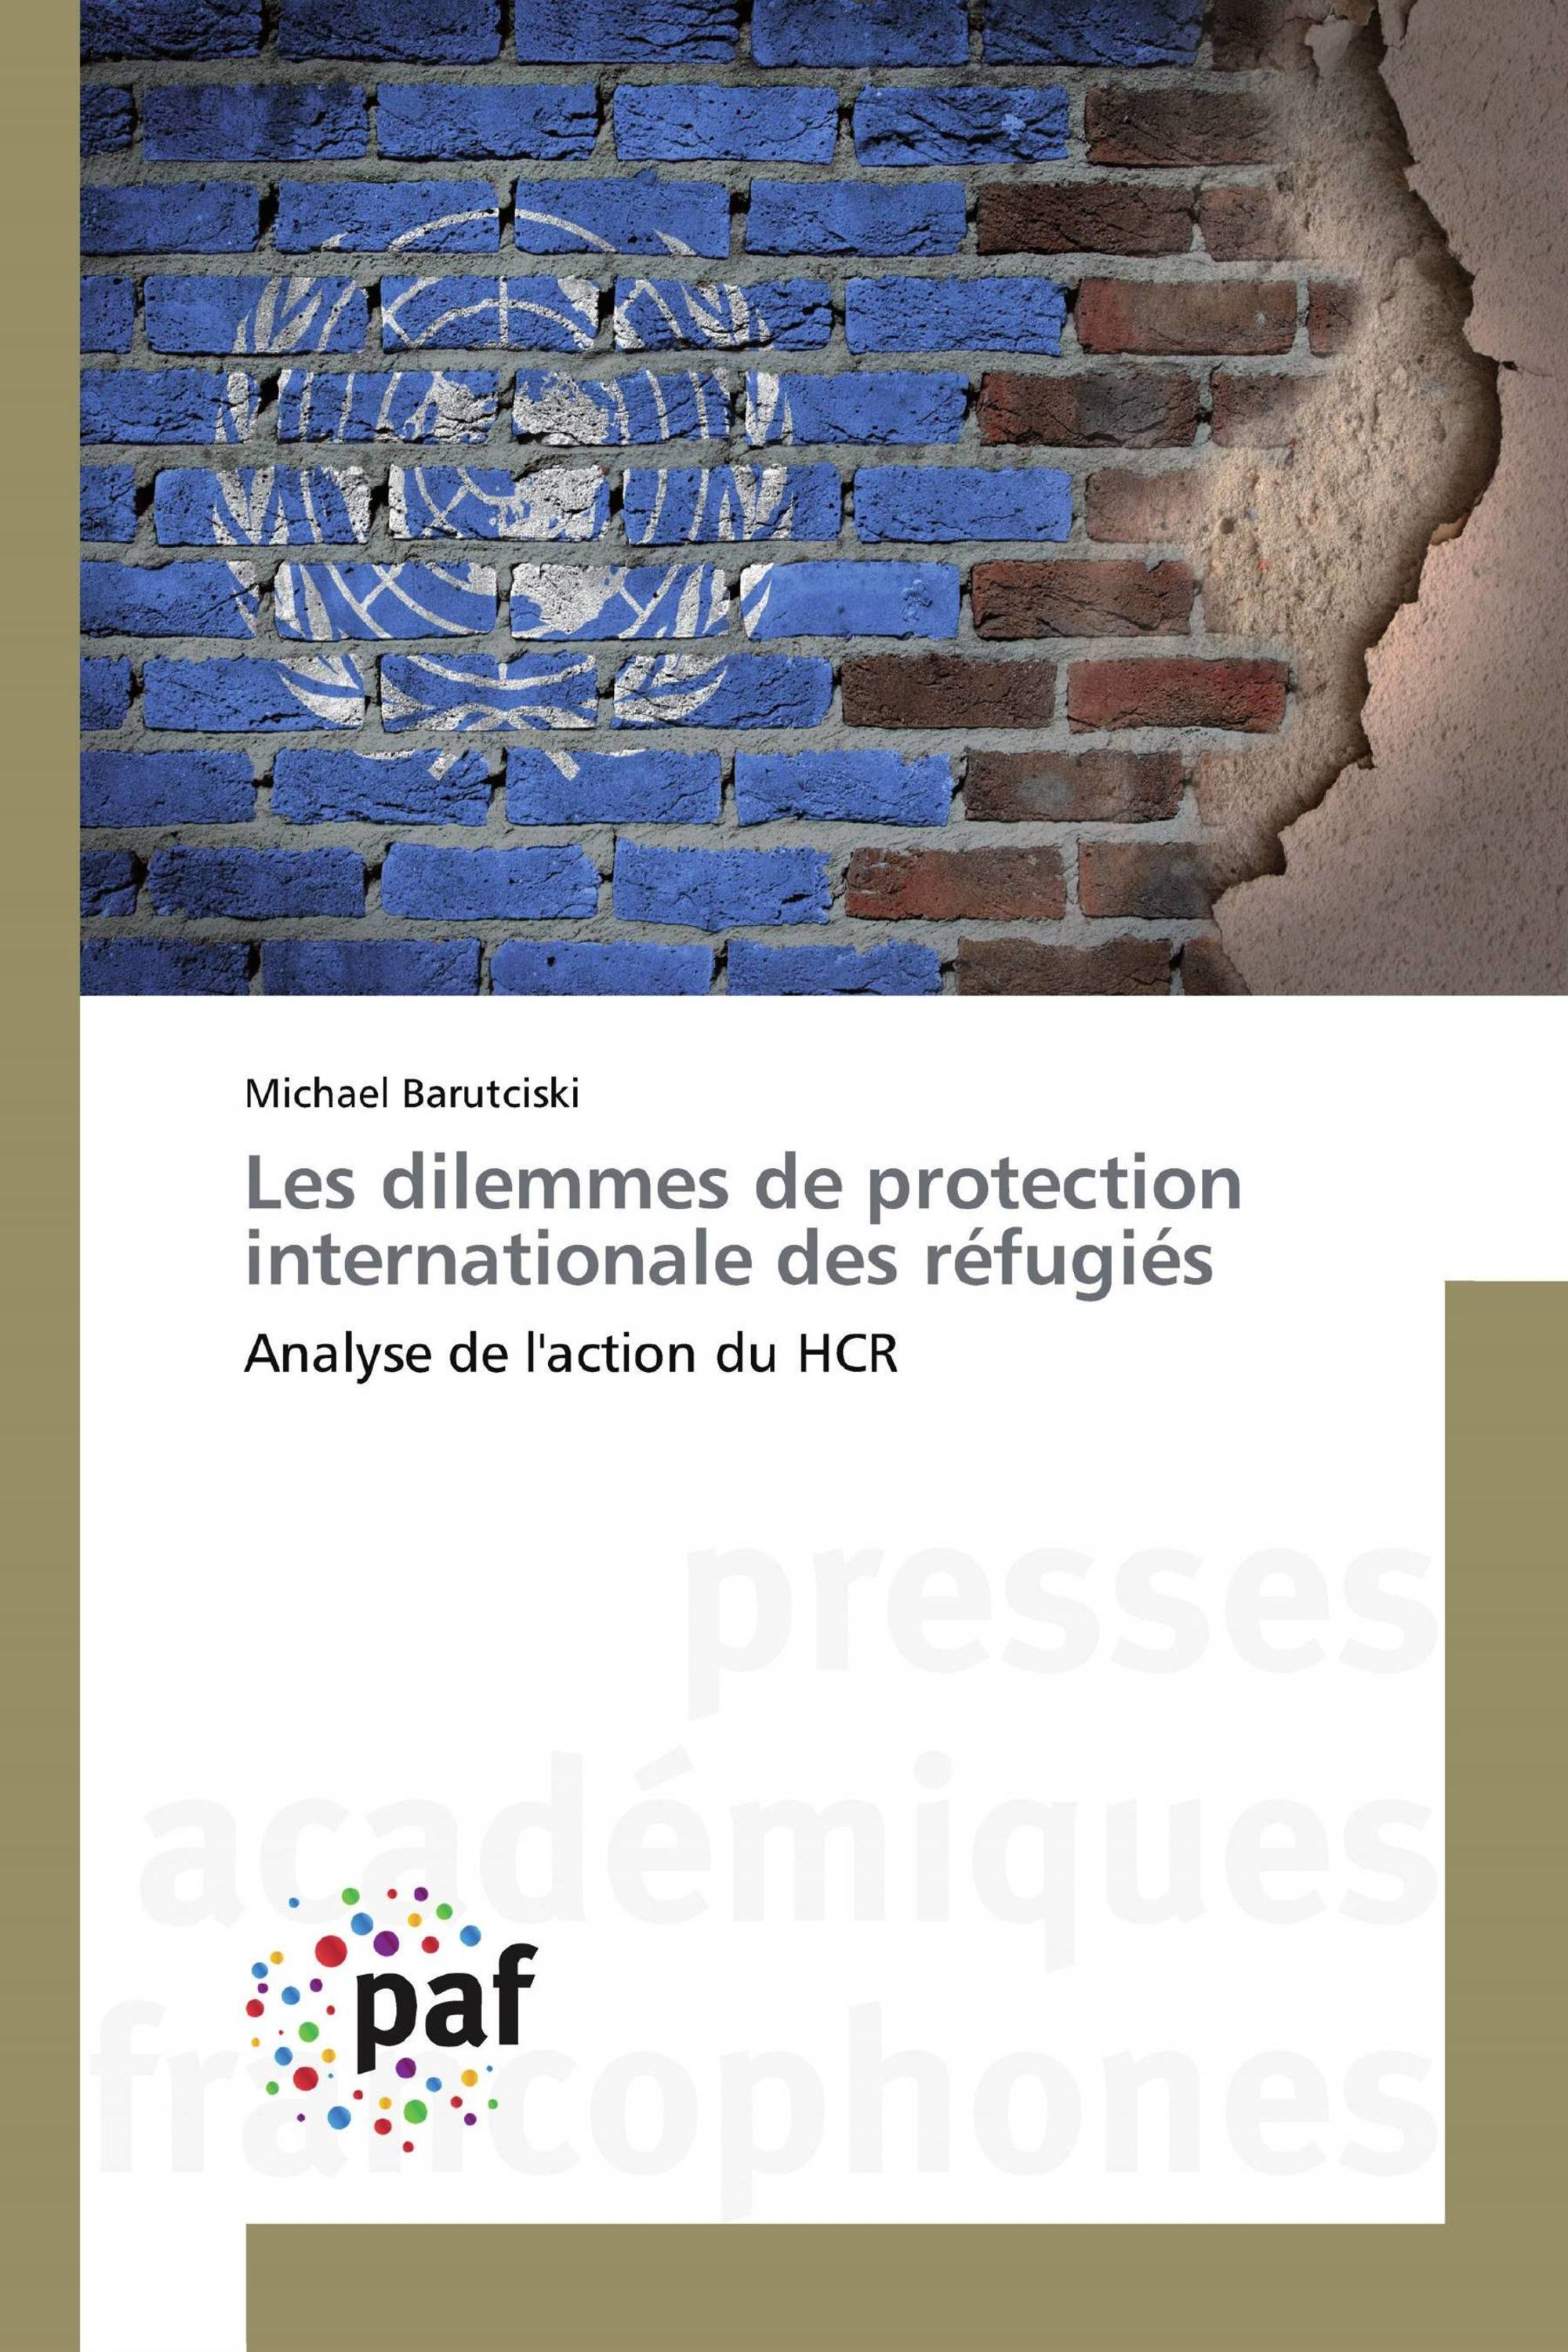 Les dilemmes de protection internationale des réfugiés